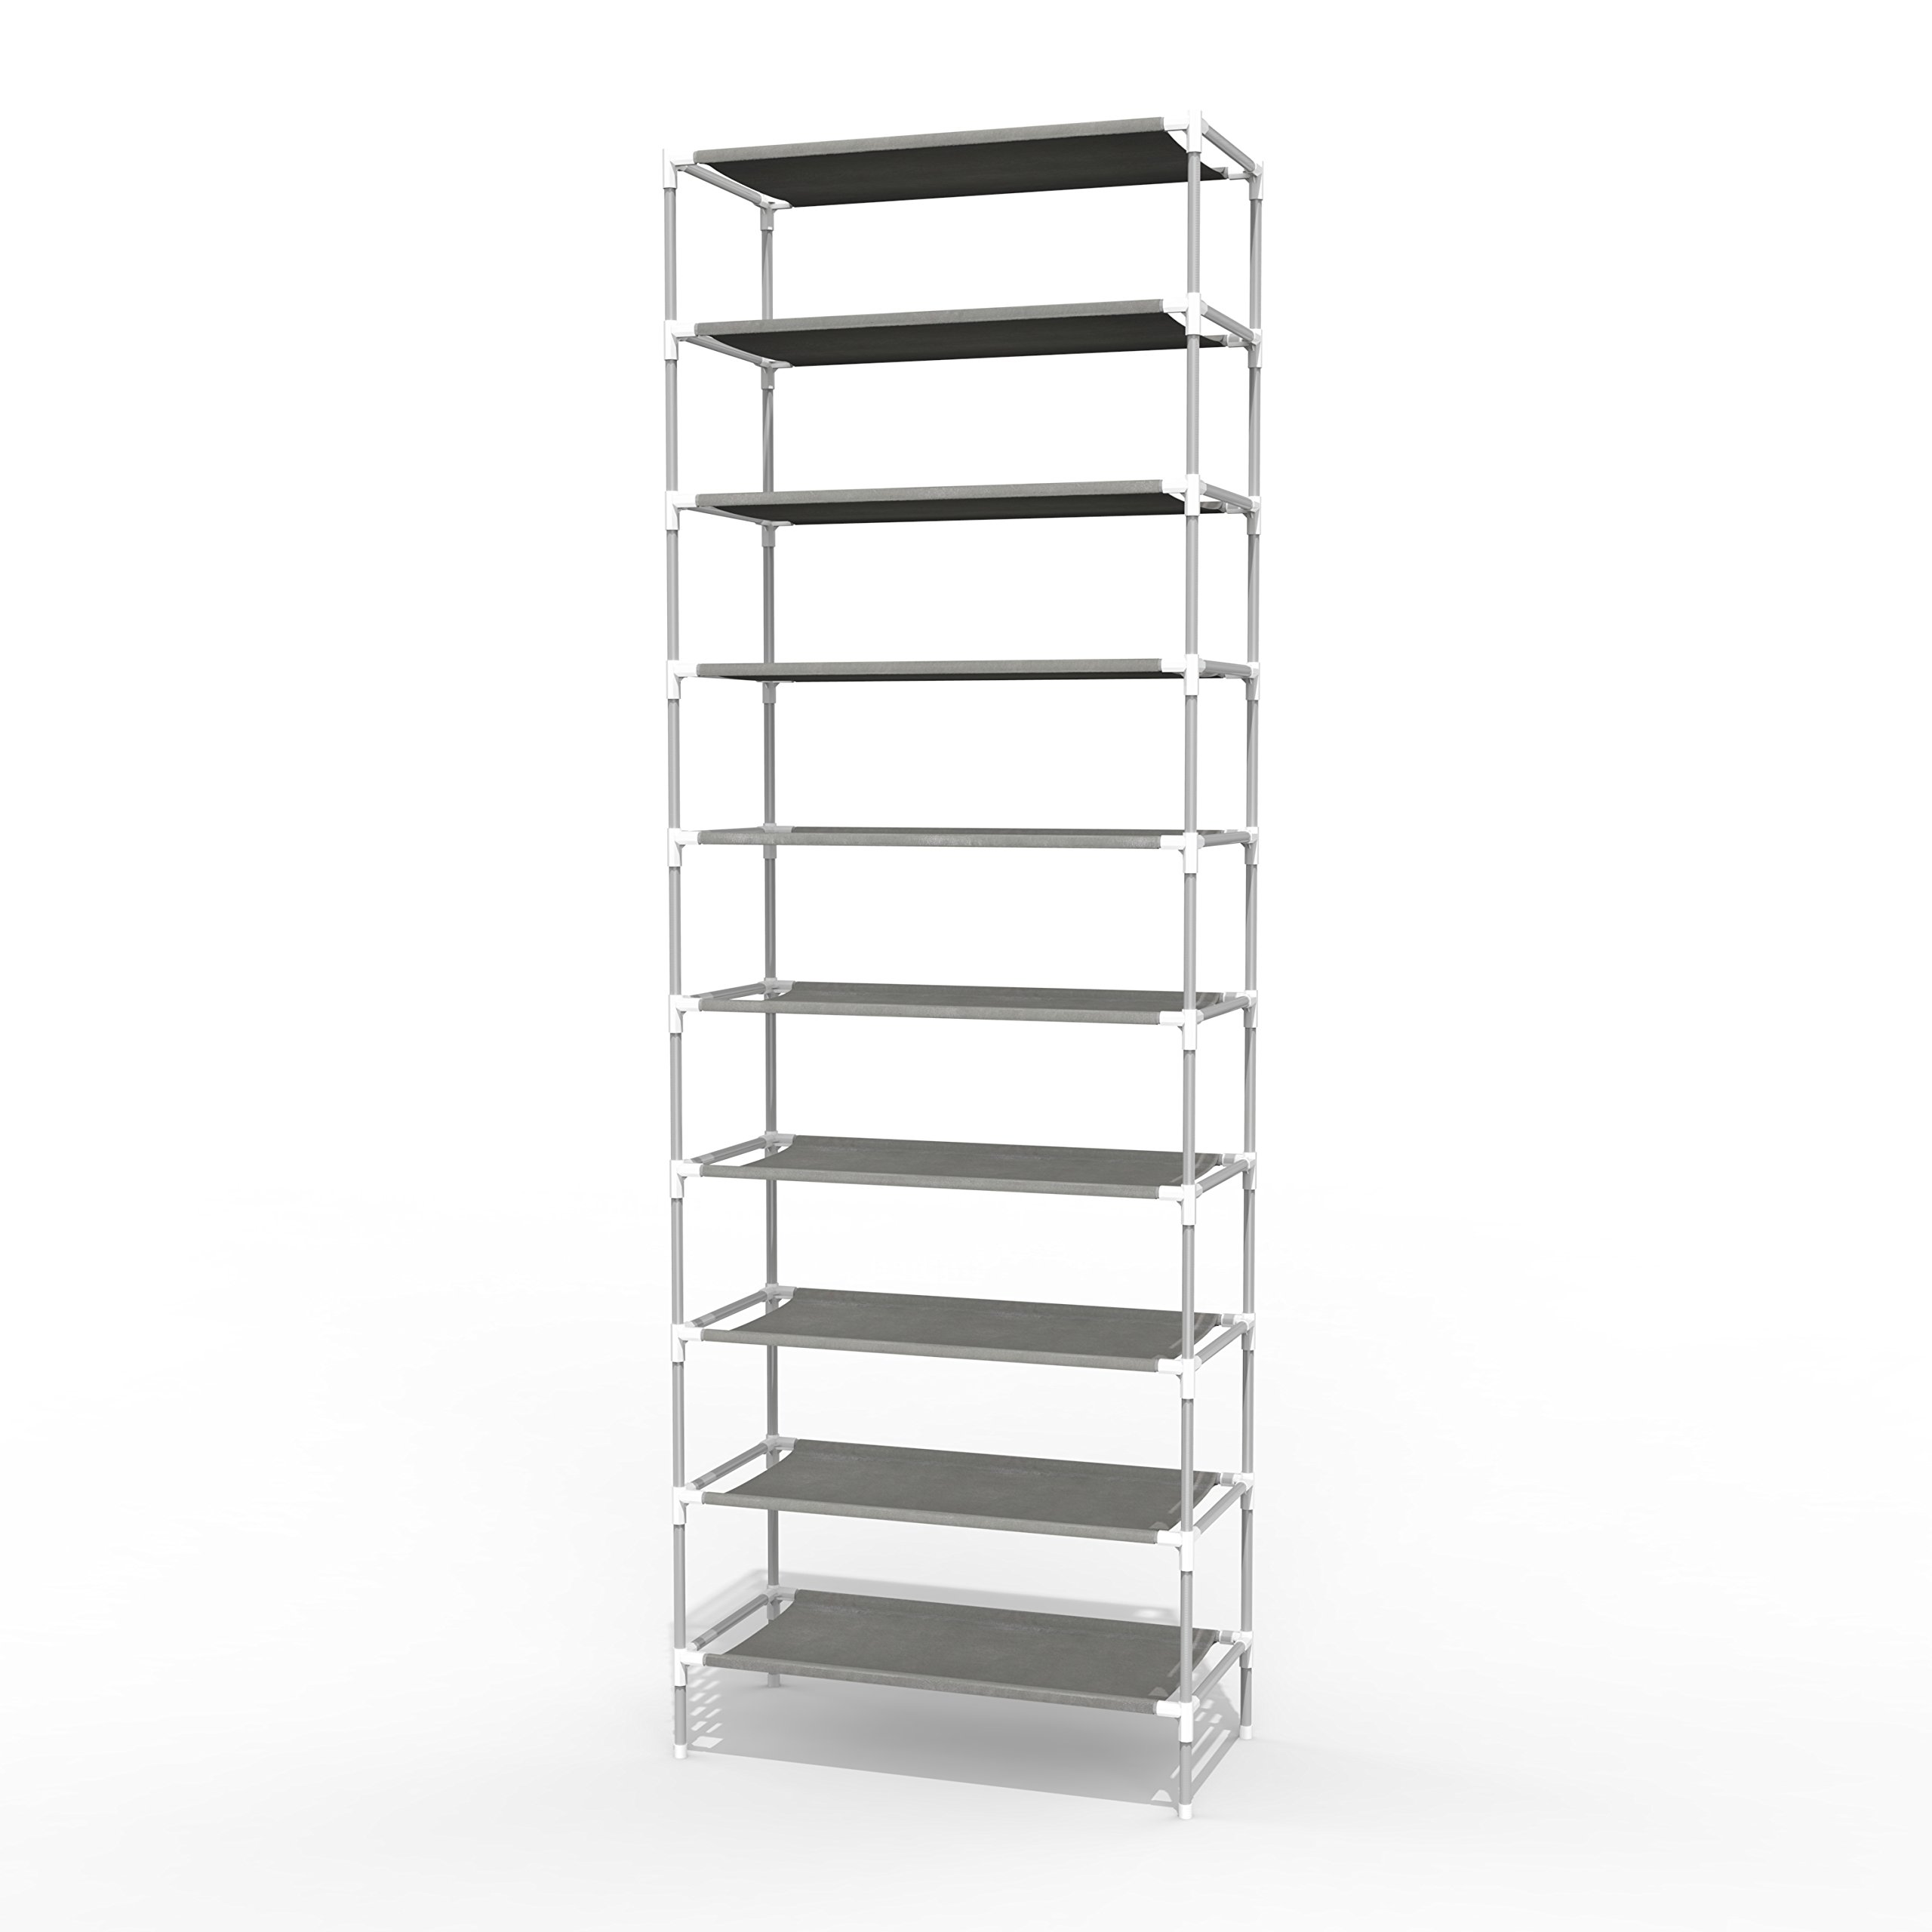 Jaketen 10 Tiers Shoe Rack - Easy Assembled Non-woven Fabric Shoe Tower Stand - Sturdy Shelf Storage Organizer Cabinet Shelf[US STOCK] (White)